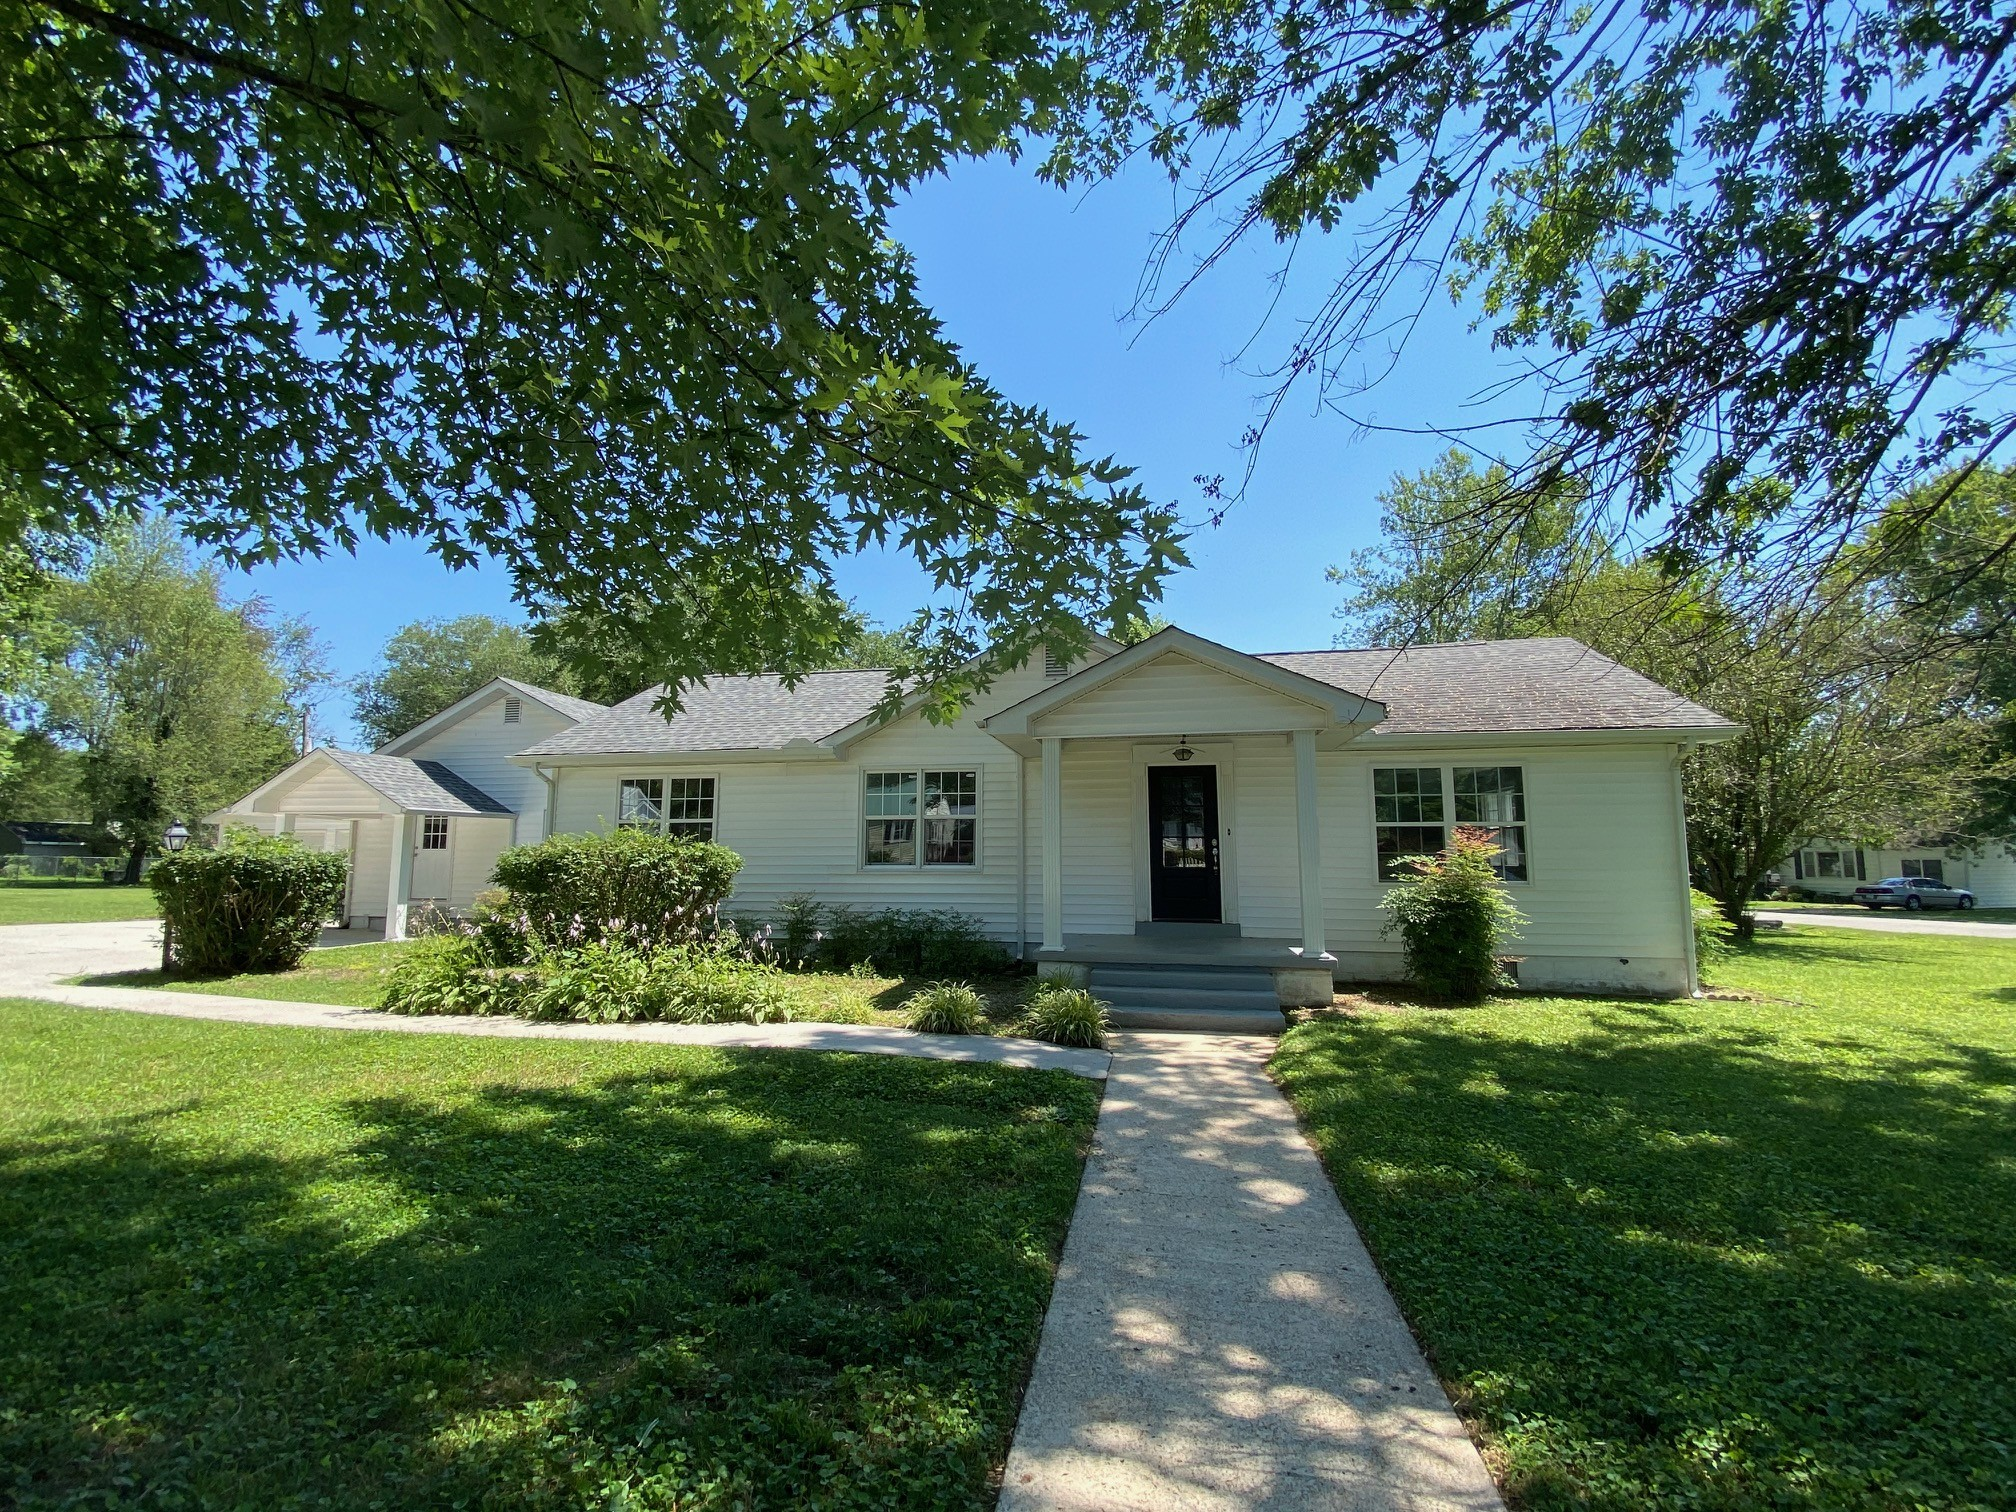 125 Anderson Dr Property Photo - Tullahoma, TN real estate listing